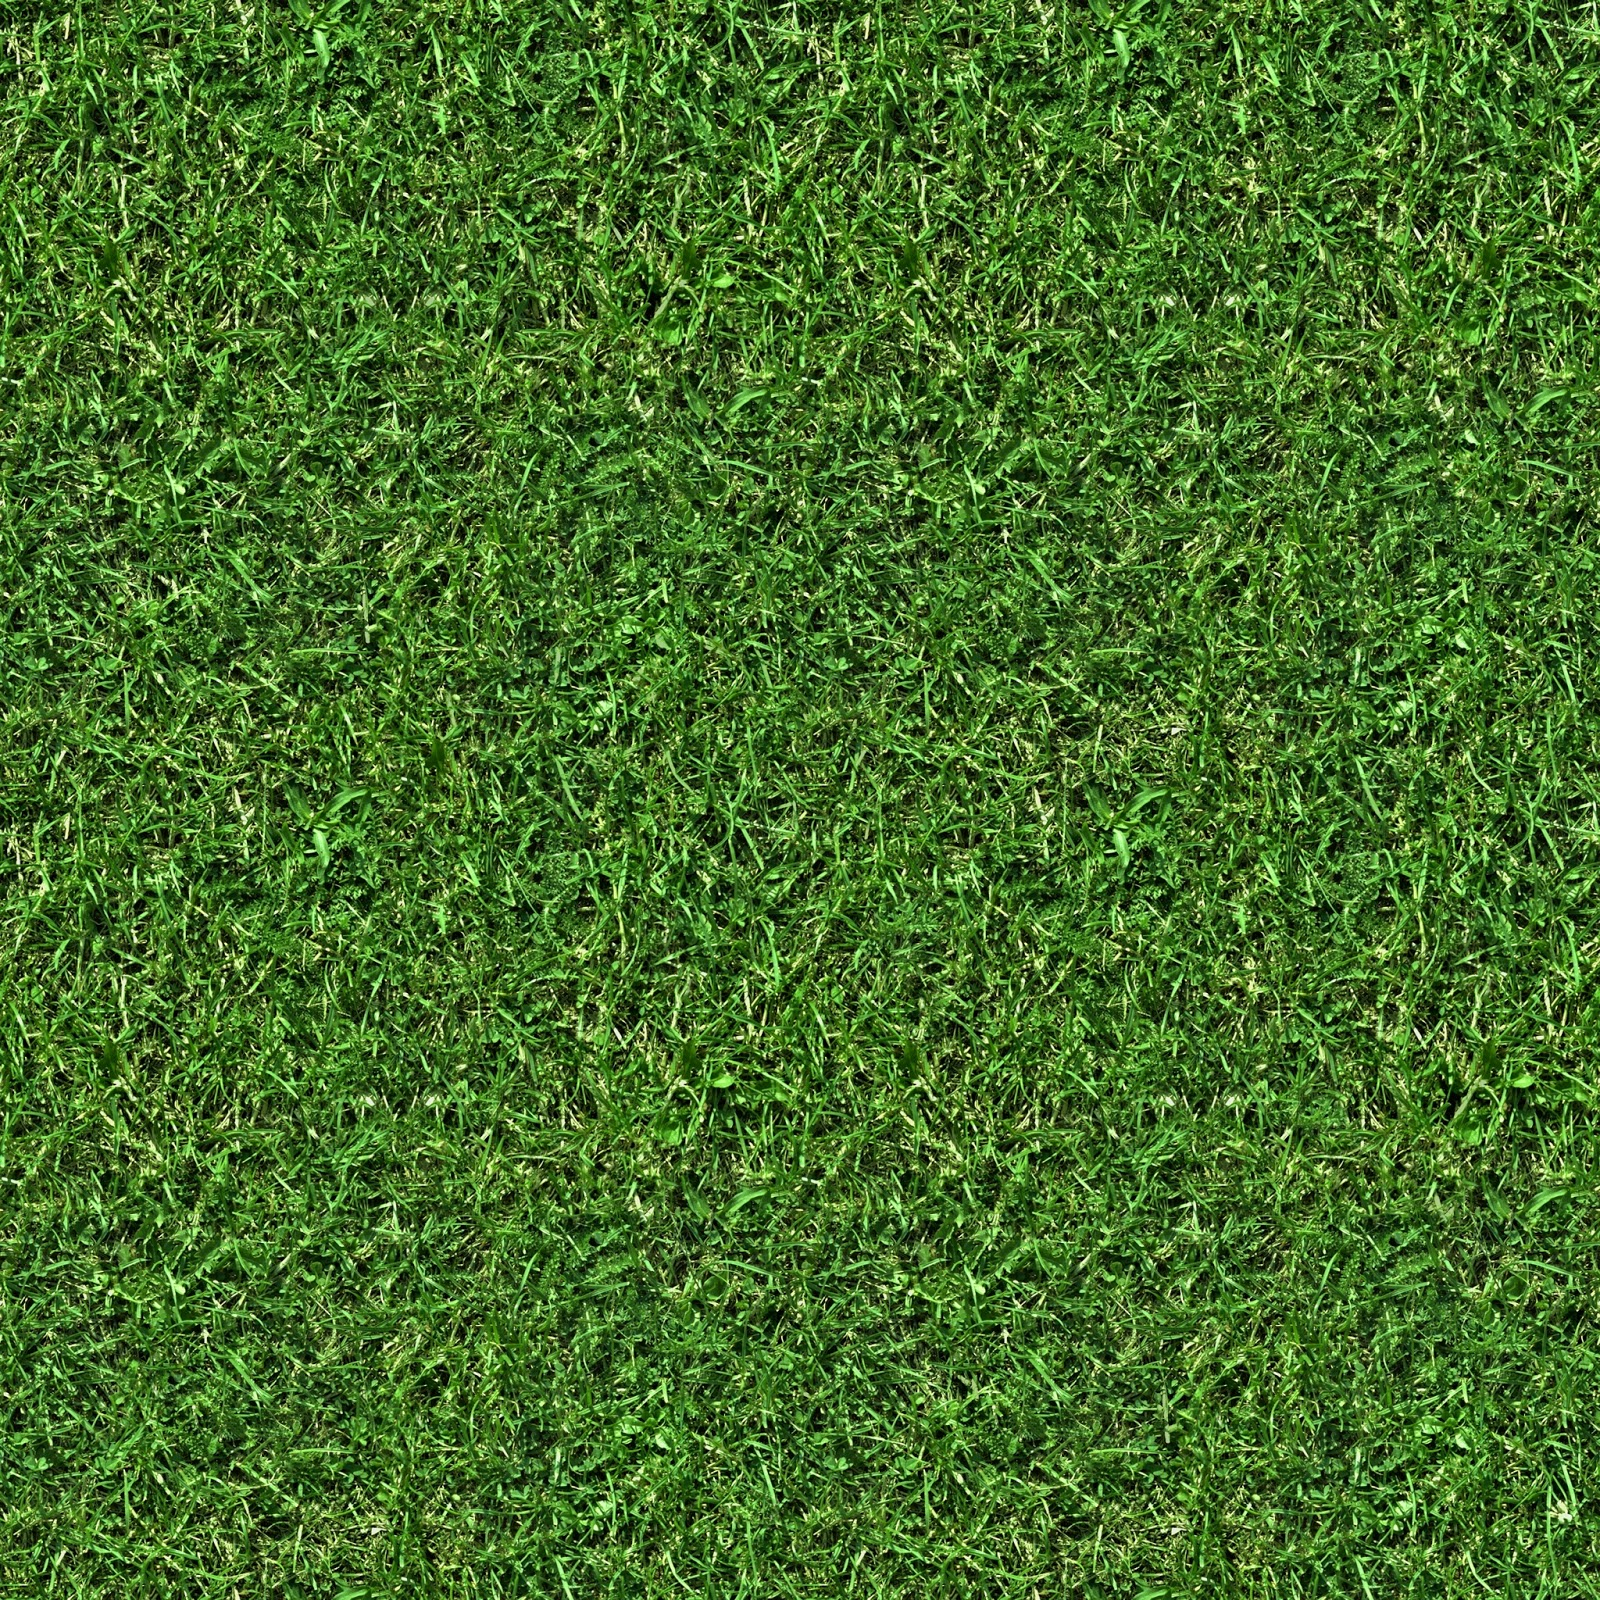 GRASS 5 Seamless Turf Lawn Green Ground Field Texture 2048x2048